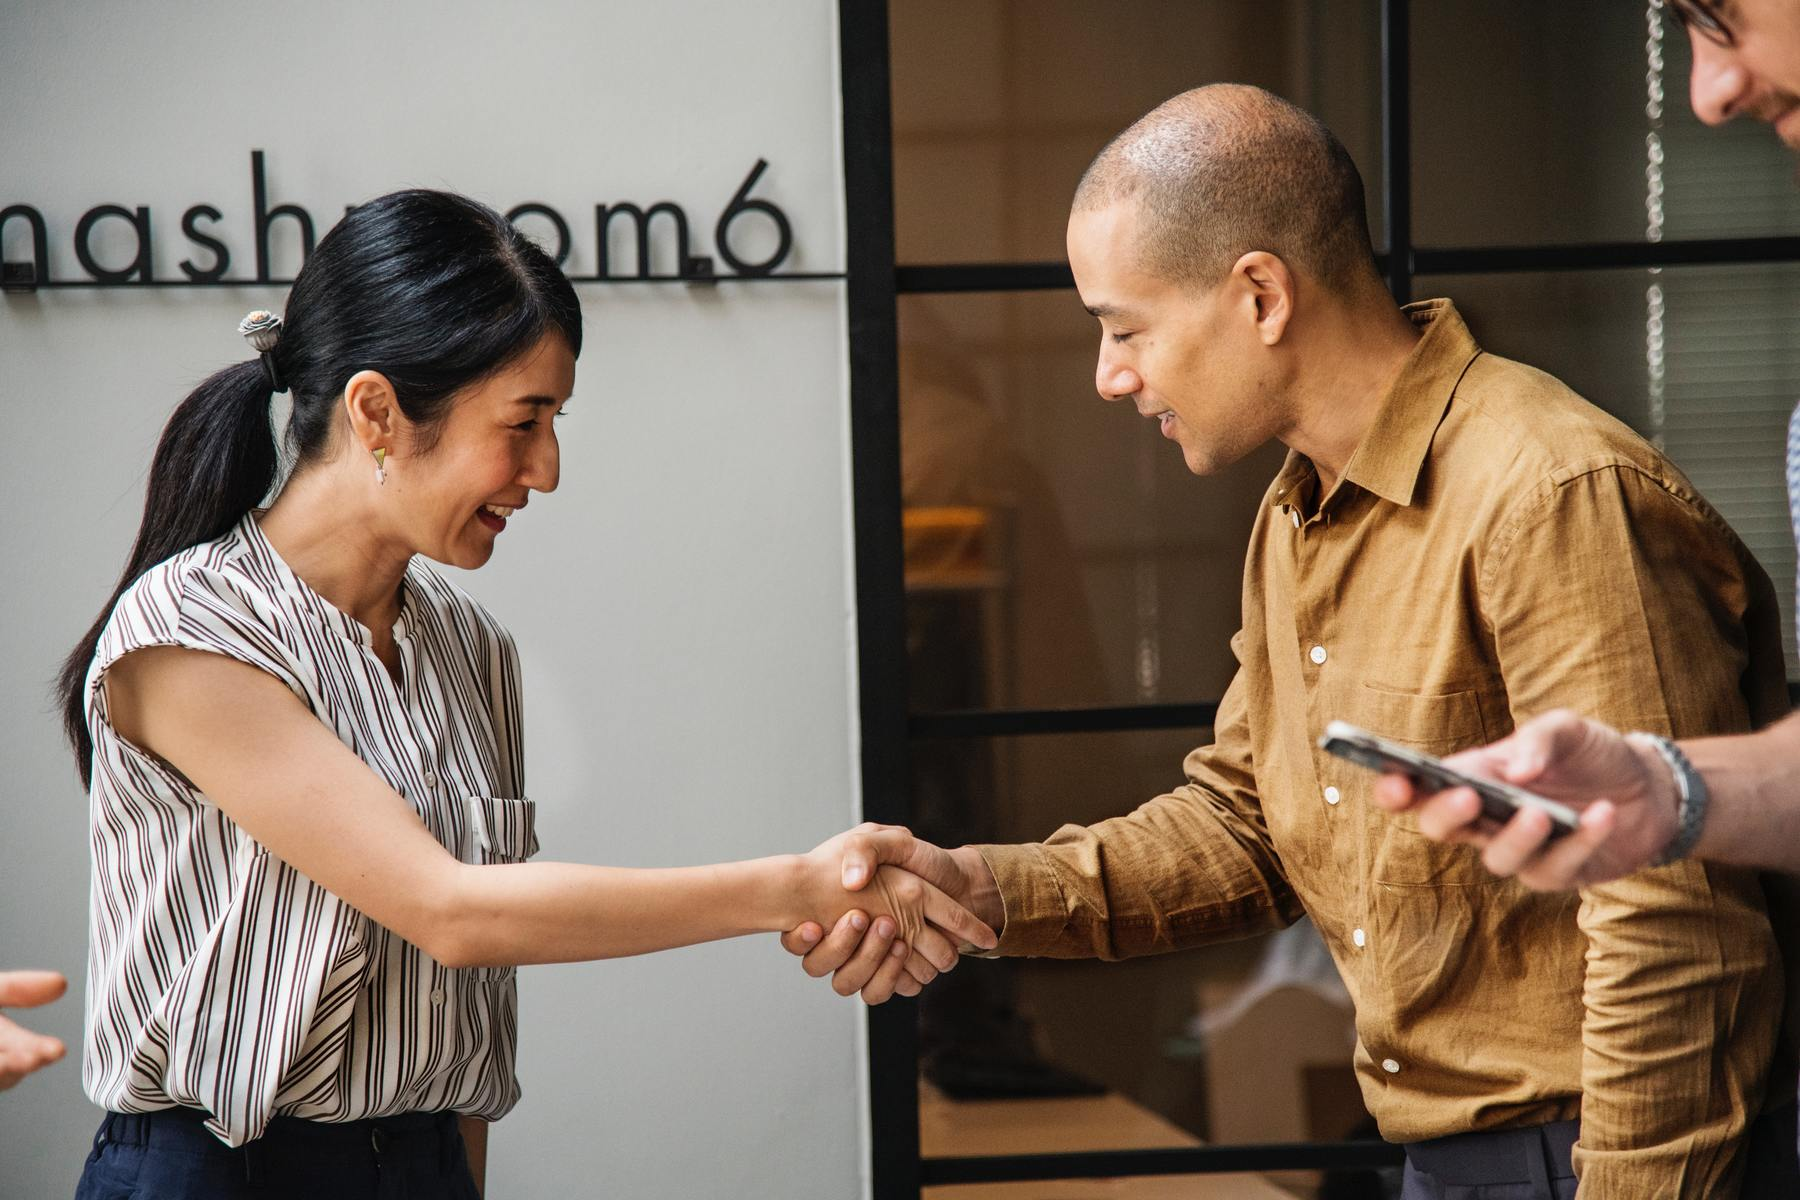 Top 3 Tips for the Interviewer: What do I ask an interviewee?